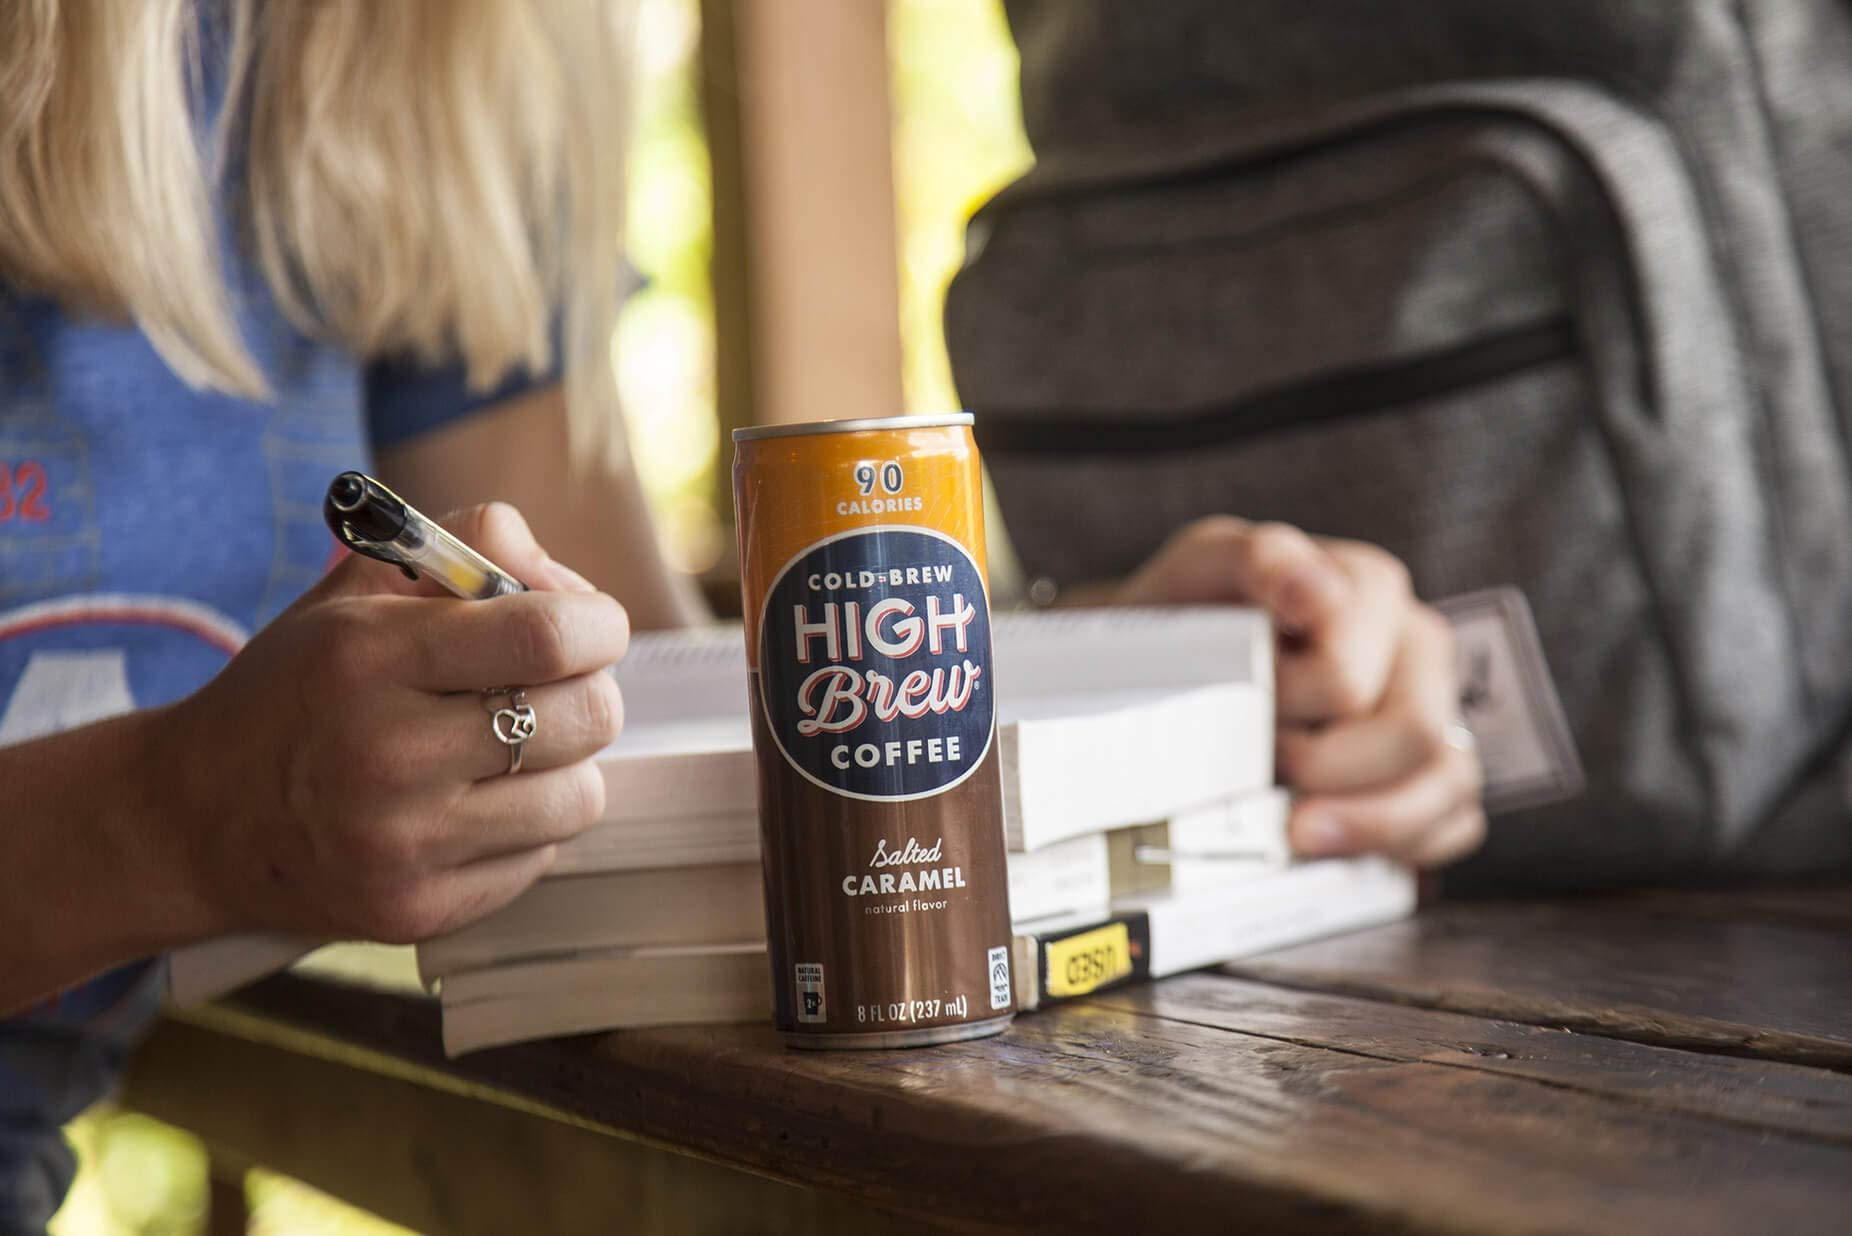 Studente che studia con una lattina di High Brew Coffee vicino ai libri.